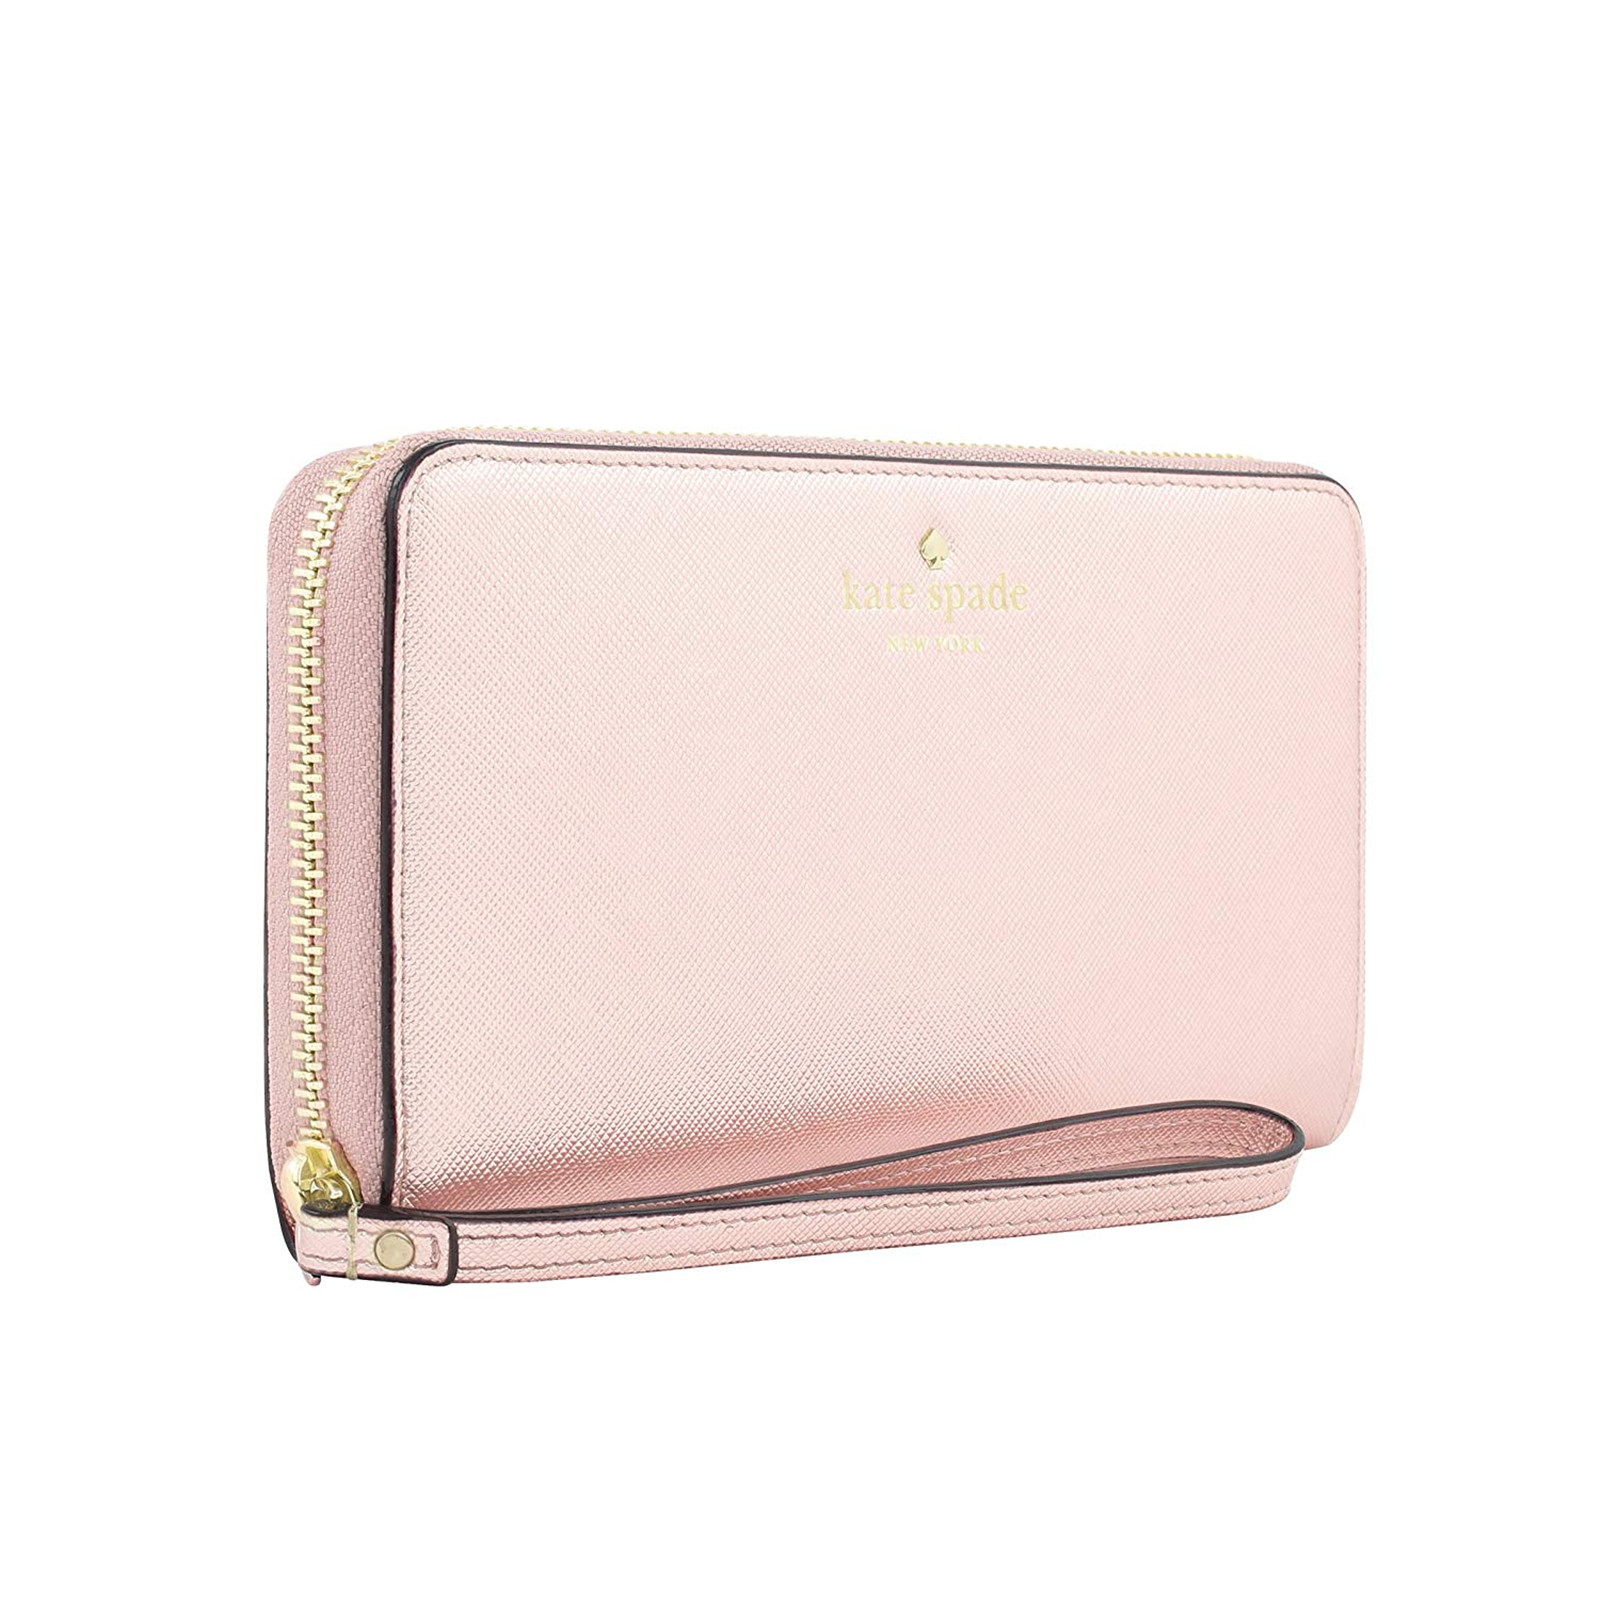 new style a3d0e ed9c9 Buy the Kate Spade New York Wallet Case for Universal/Smartphones ...